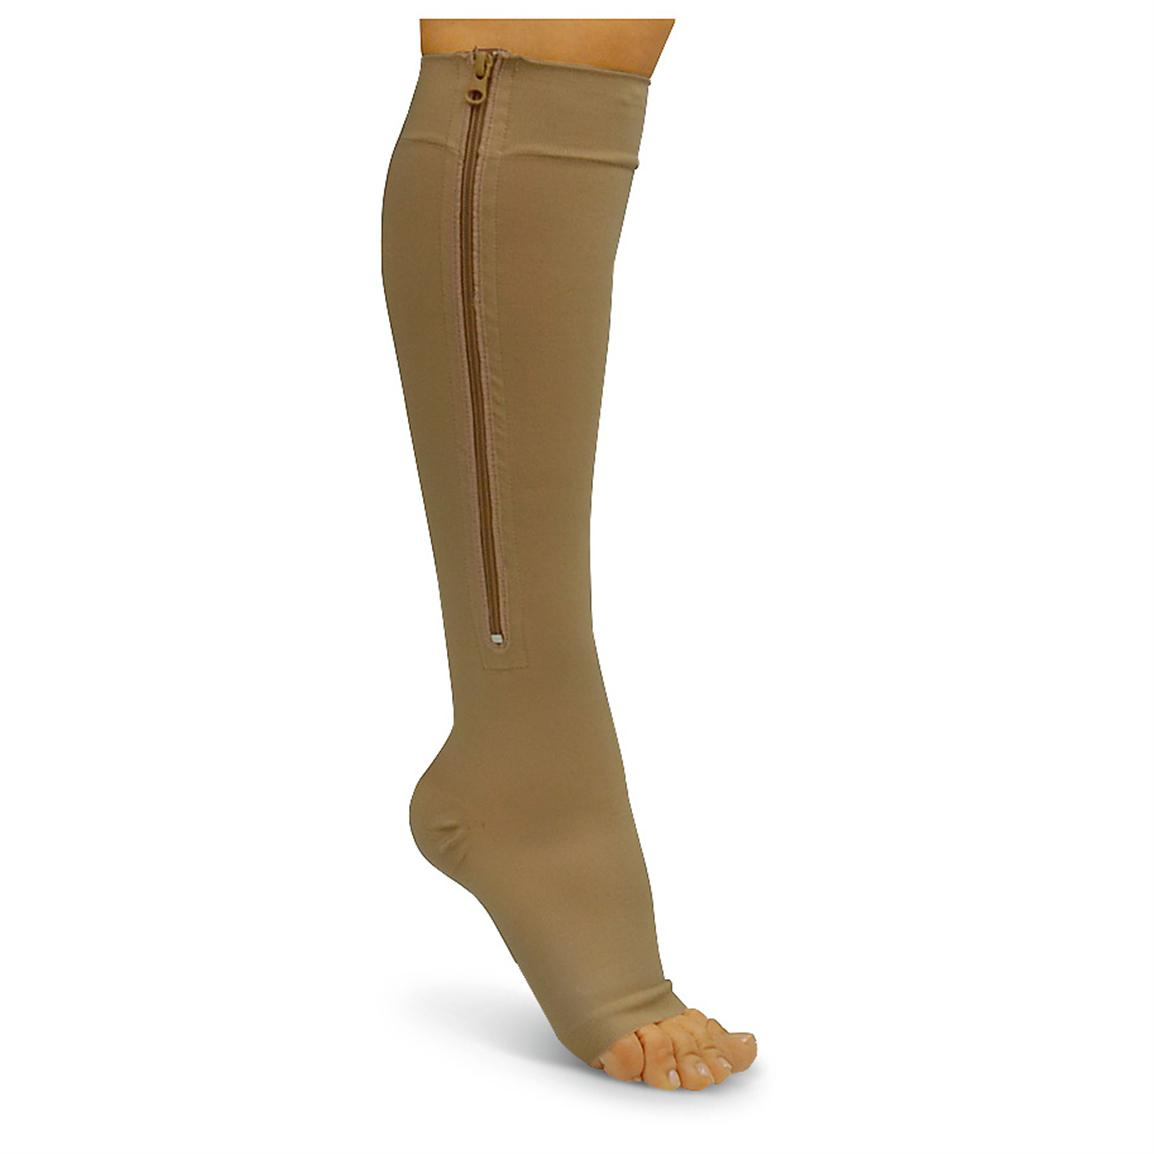 Zipper Compression Socks, Beige